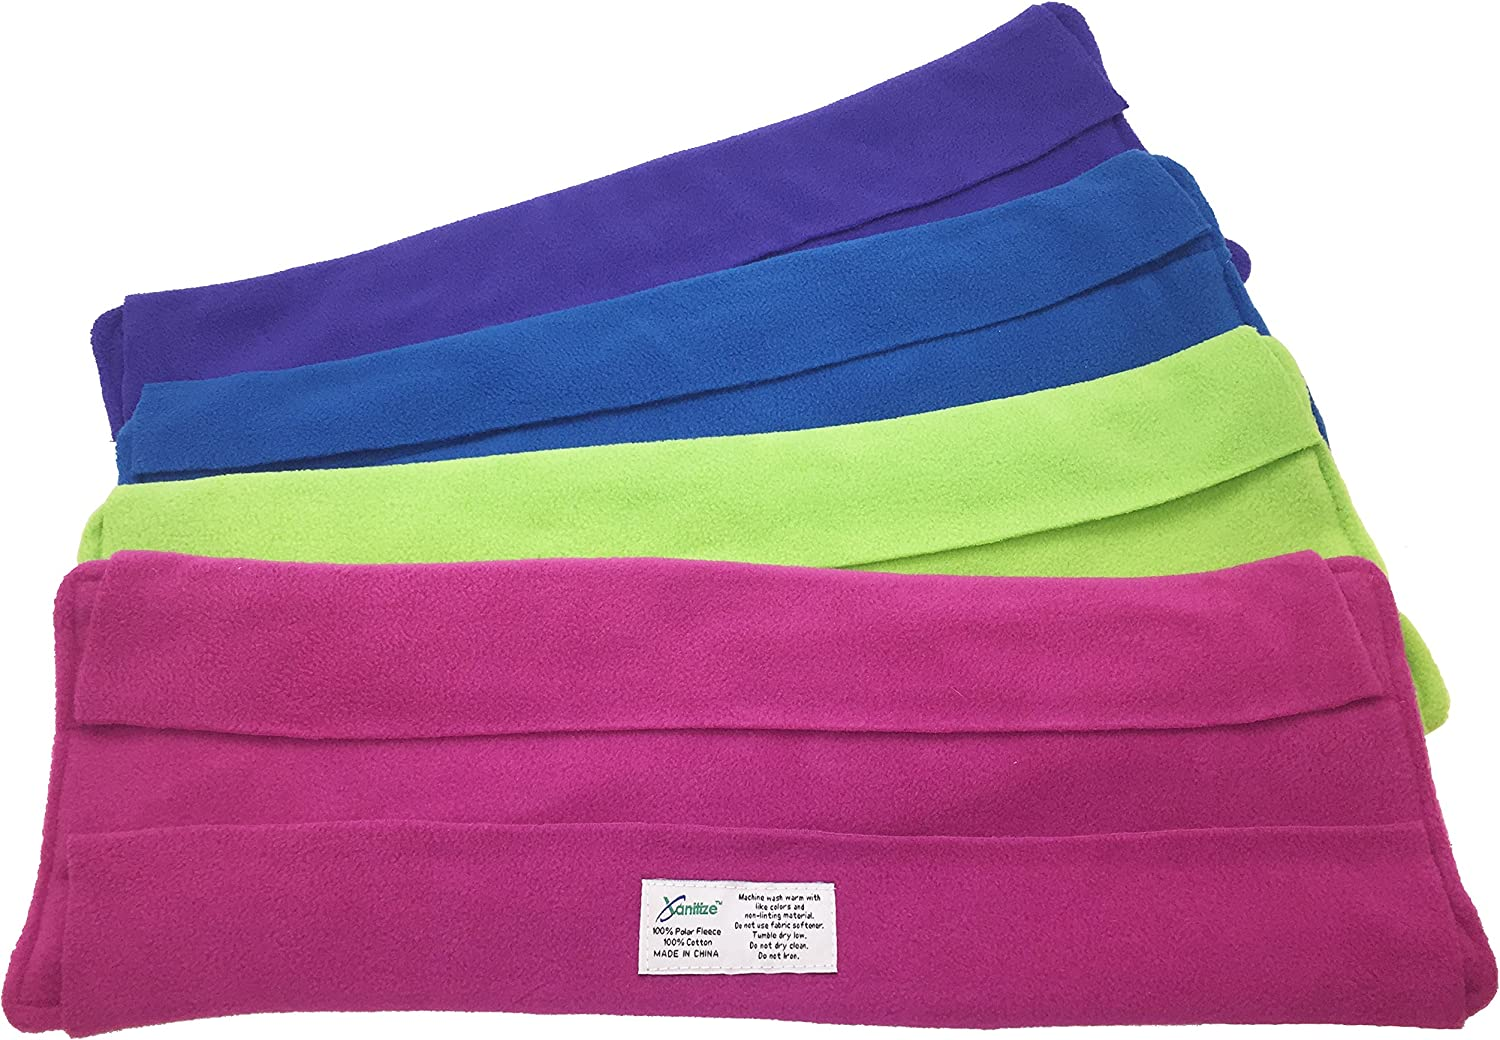 Wet Mop Pads for Sweeper - 2 Sided Fleece & Terry Cloth - Washable Reusable by Xanitize (4-Pack) (X-Large, Purple, Blue, Green, Pink)